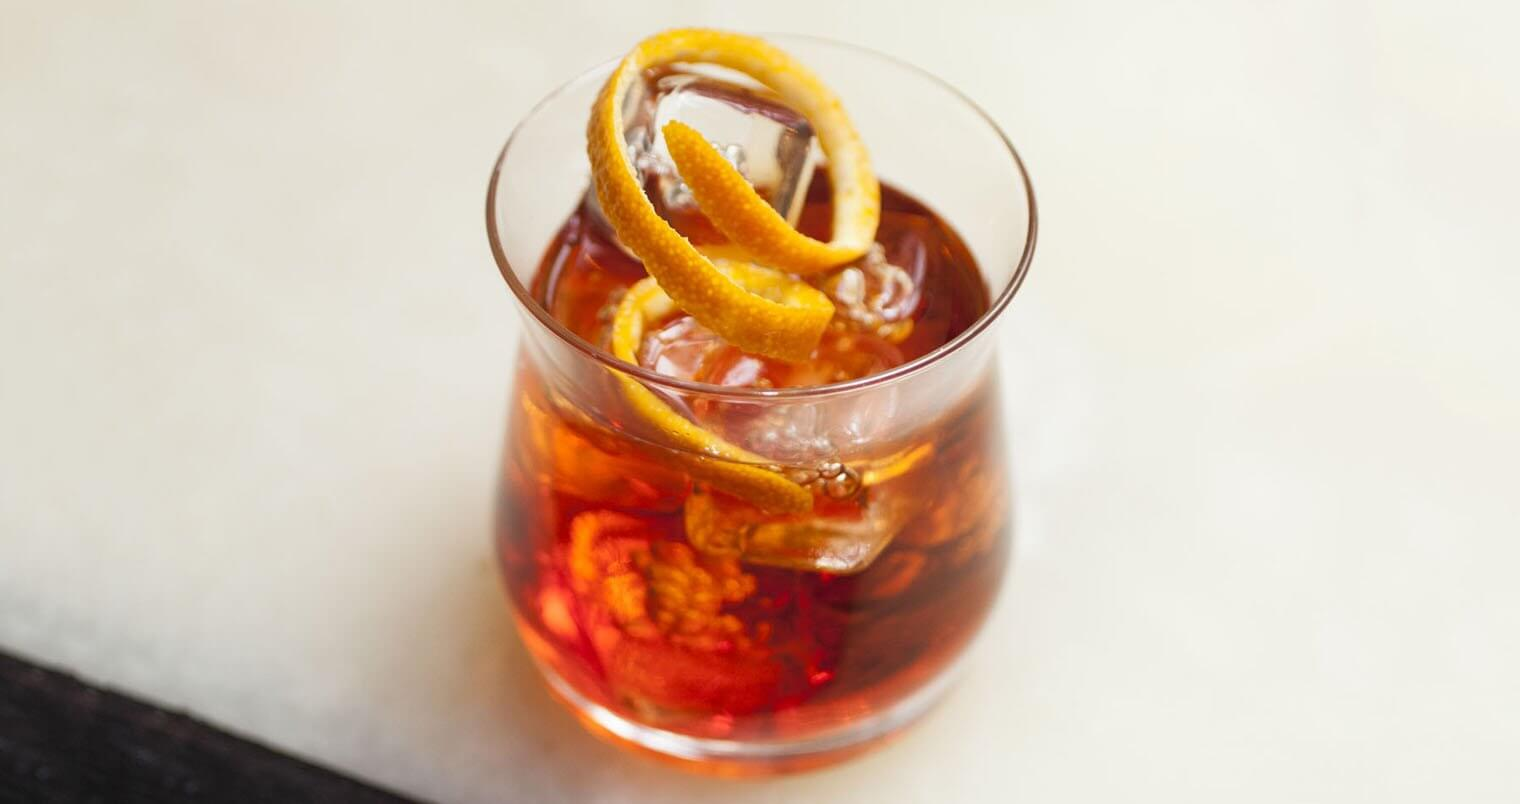 Chilled's Classic Negroni, featured image